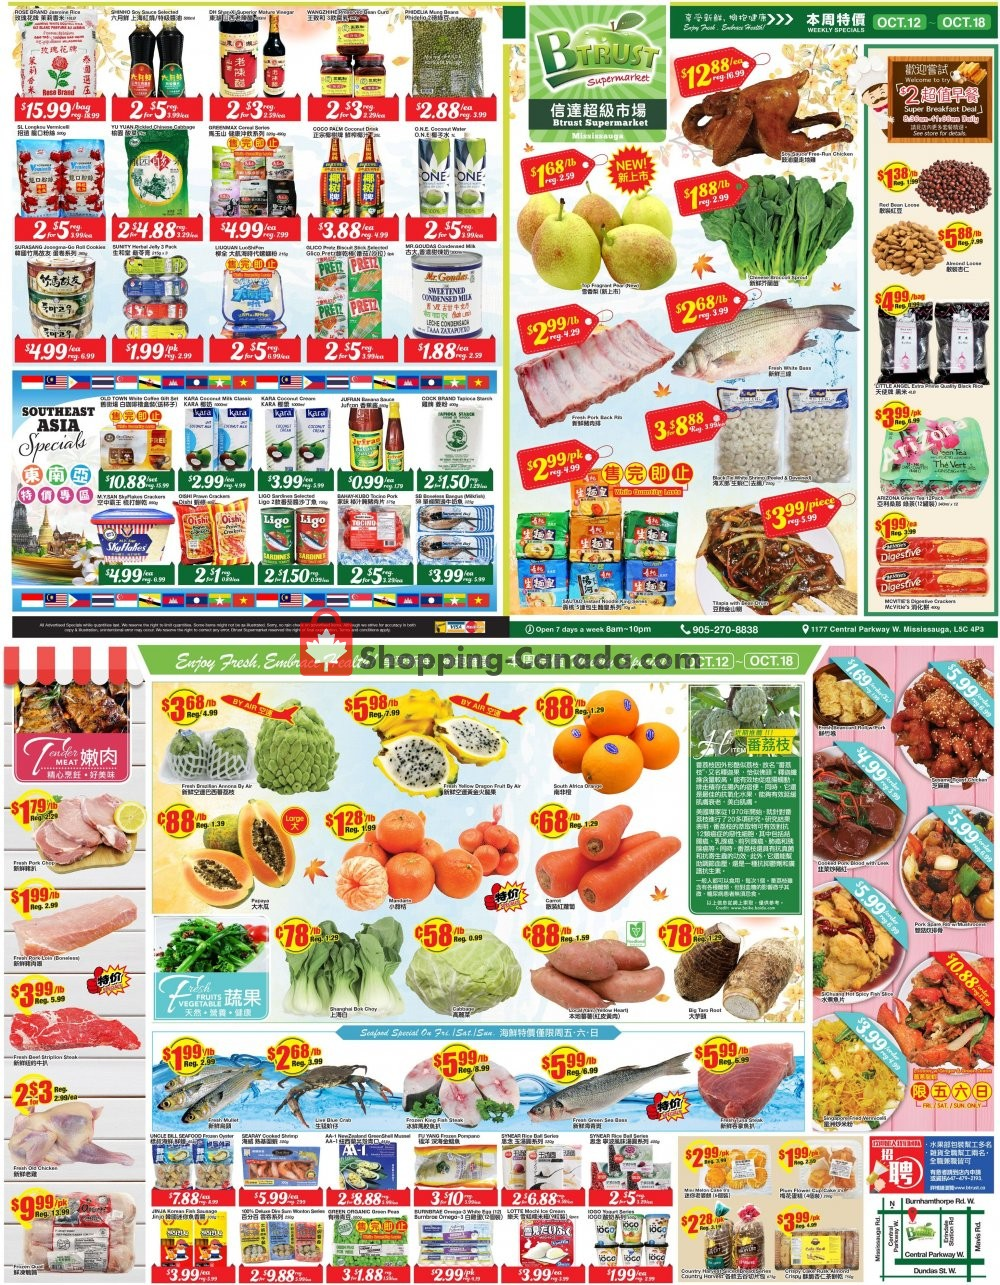 Flyer Btrust Supermarket Canada - from Friday October 12, 2018 to Thursday October 18, 2018